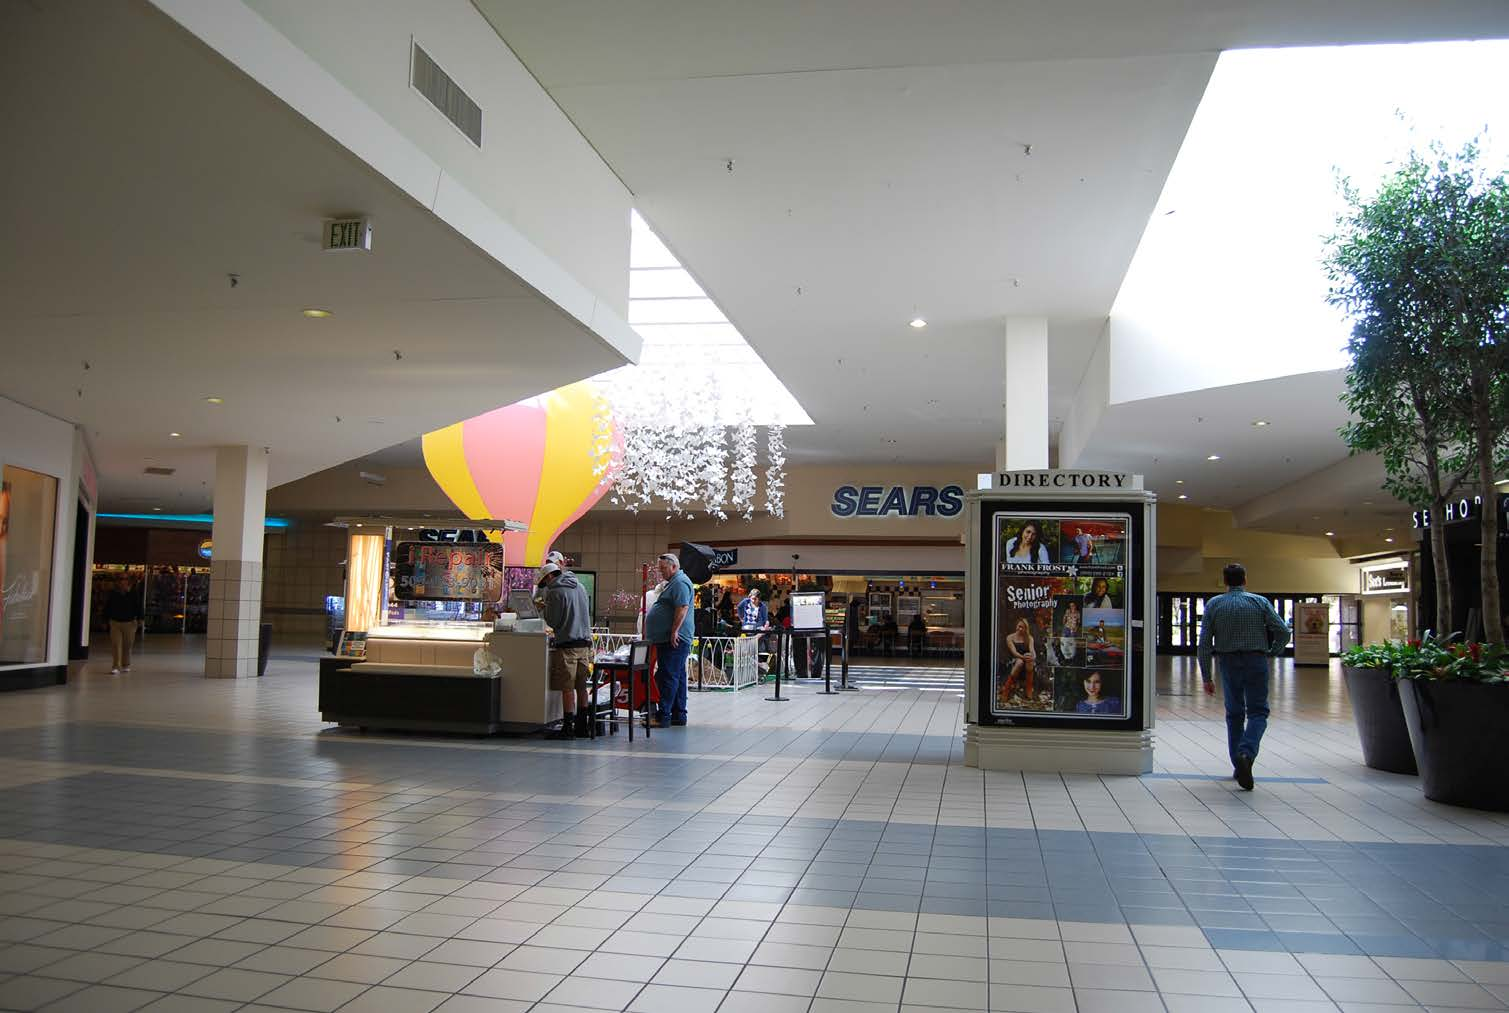 Briarwood Mall is located three miles south of the University of Michigan. It is the major retail hub for the Ann Arbor market. Ann Arbor is a highly educated community, specializing in world-class health care and automotive research and development.